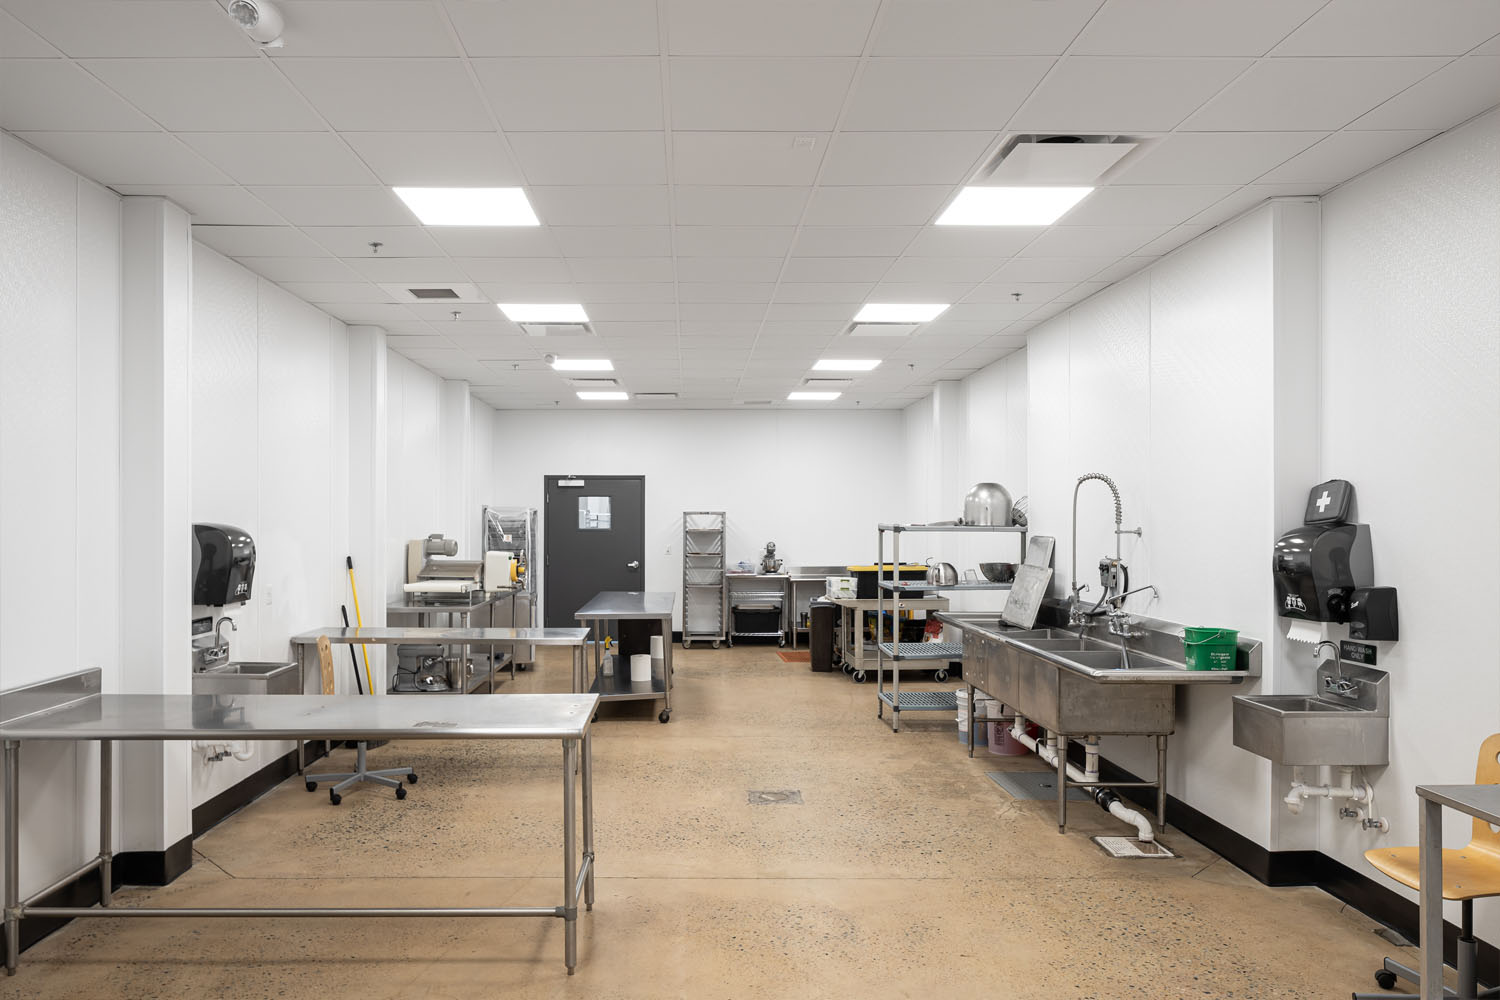 gallery photo : Hatch Cafe & Commercial Kitchens